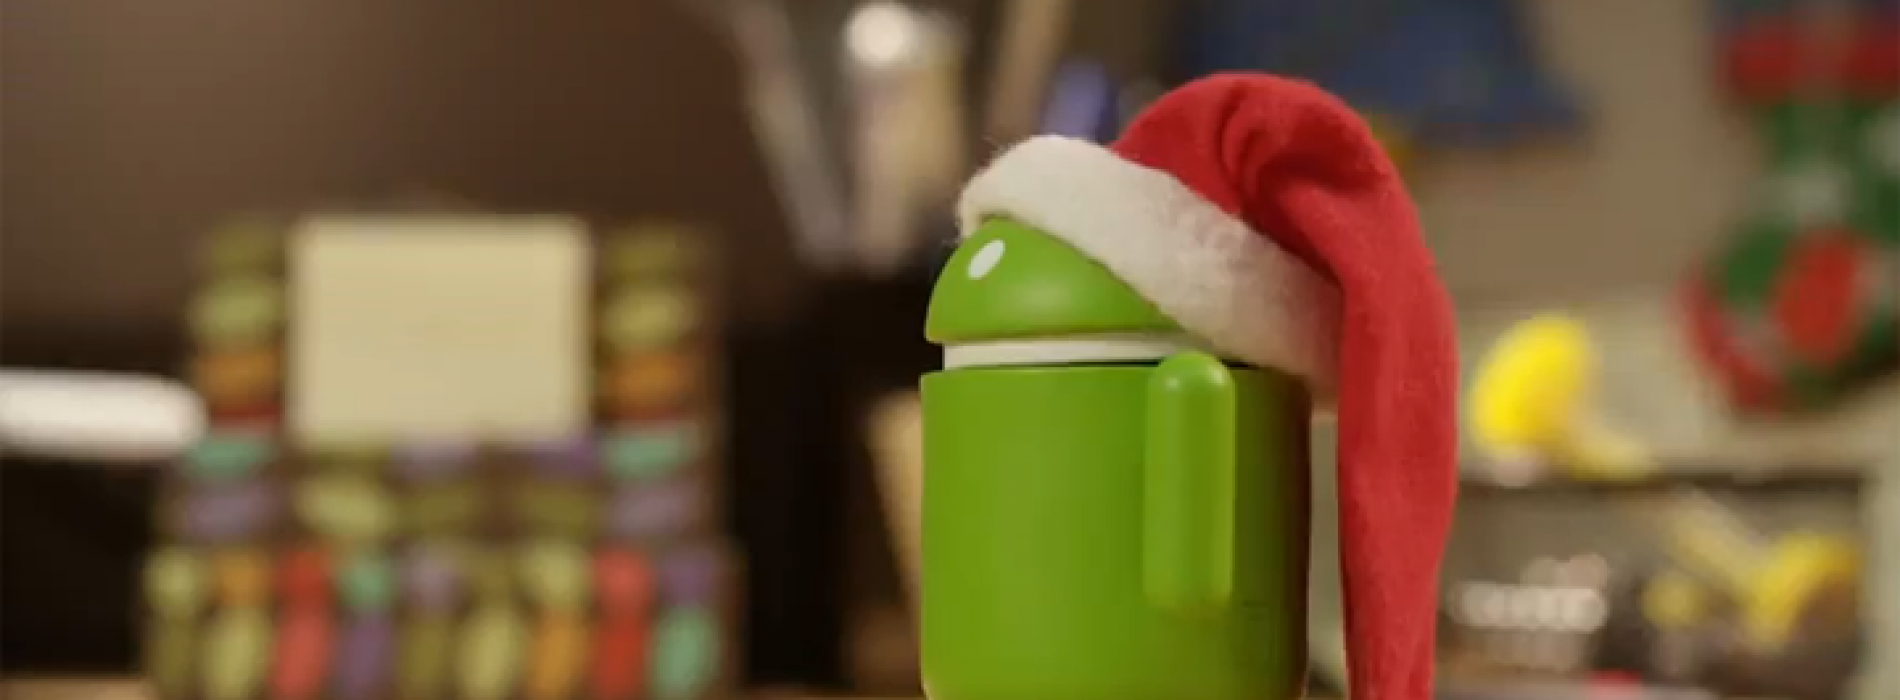 The Android team wishes you a Happy Holiday